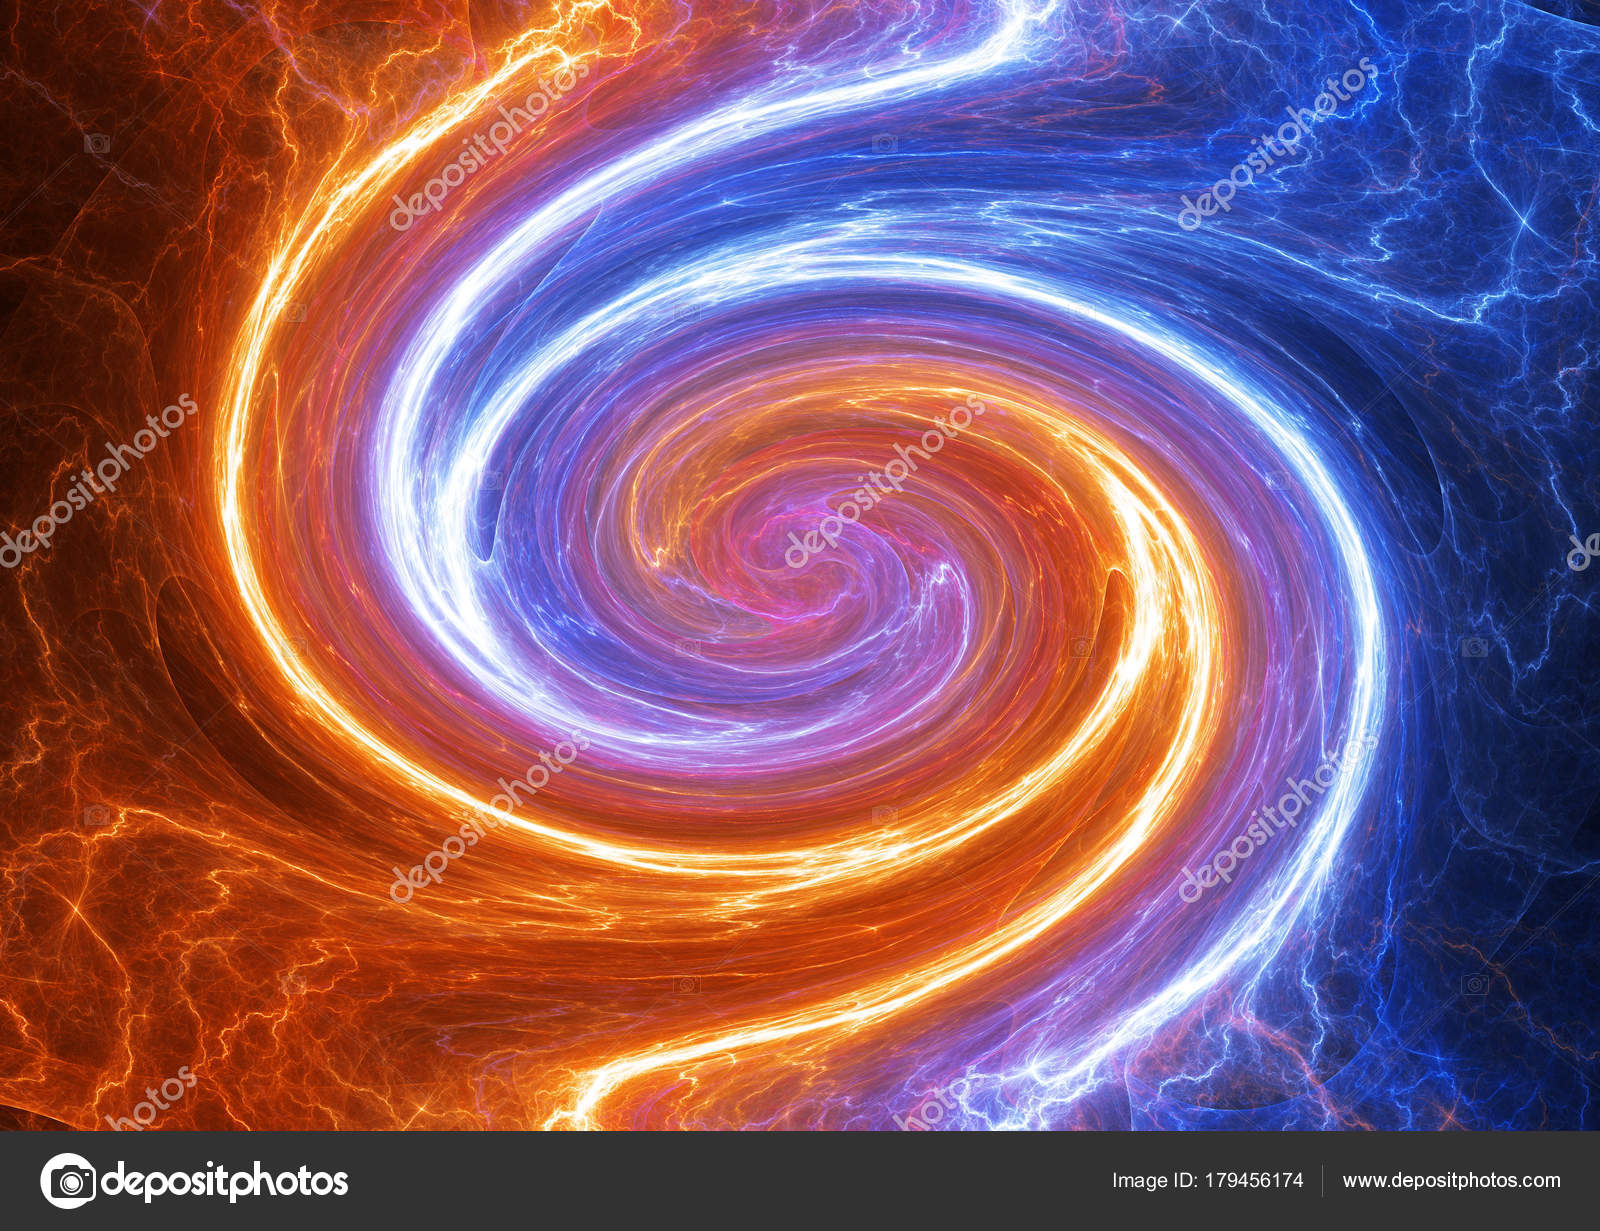 Swirling Fire Ice Plasma Lightning Abstract Electrical